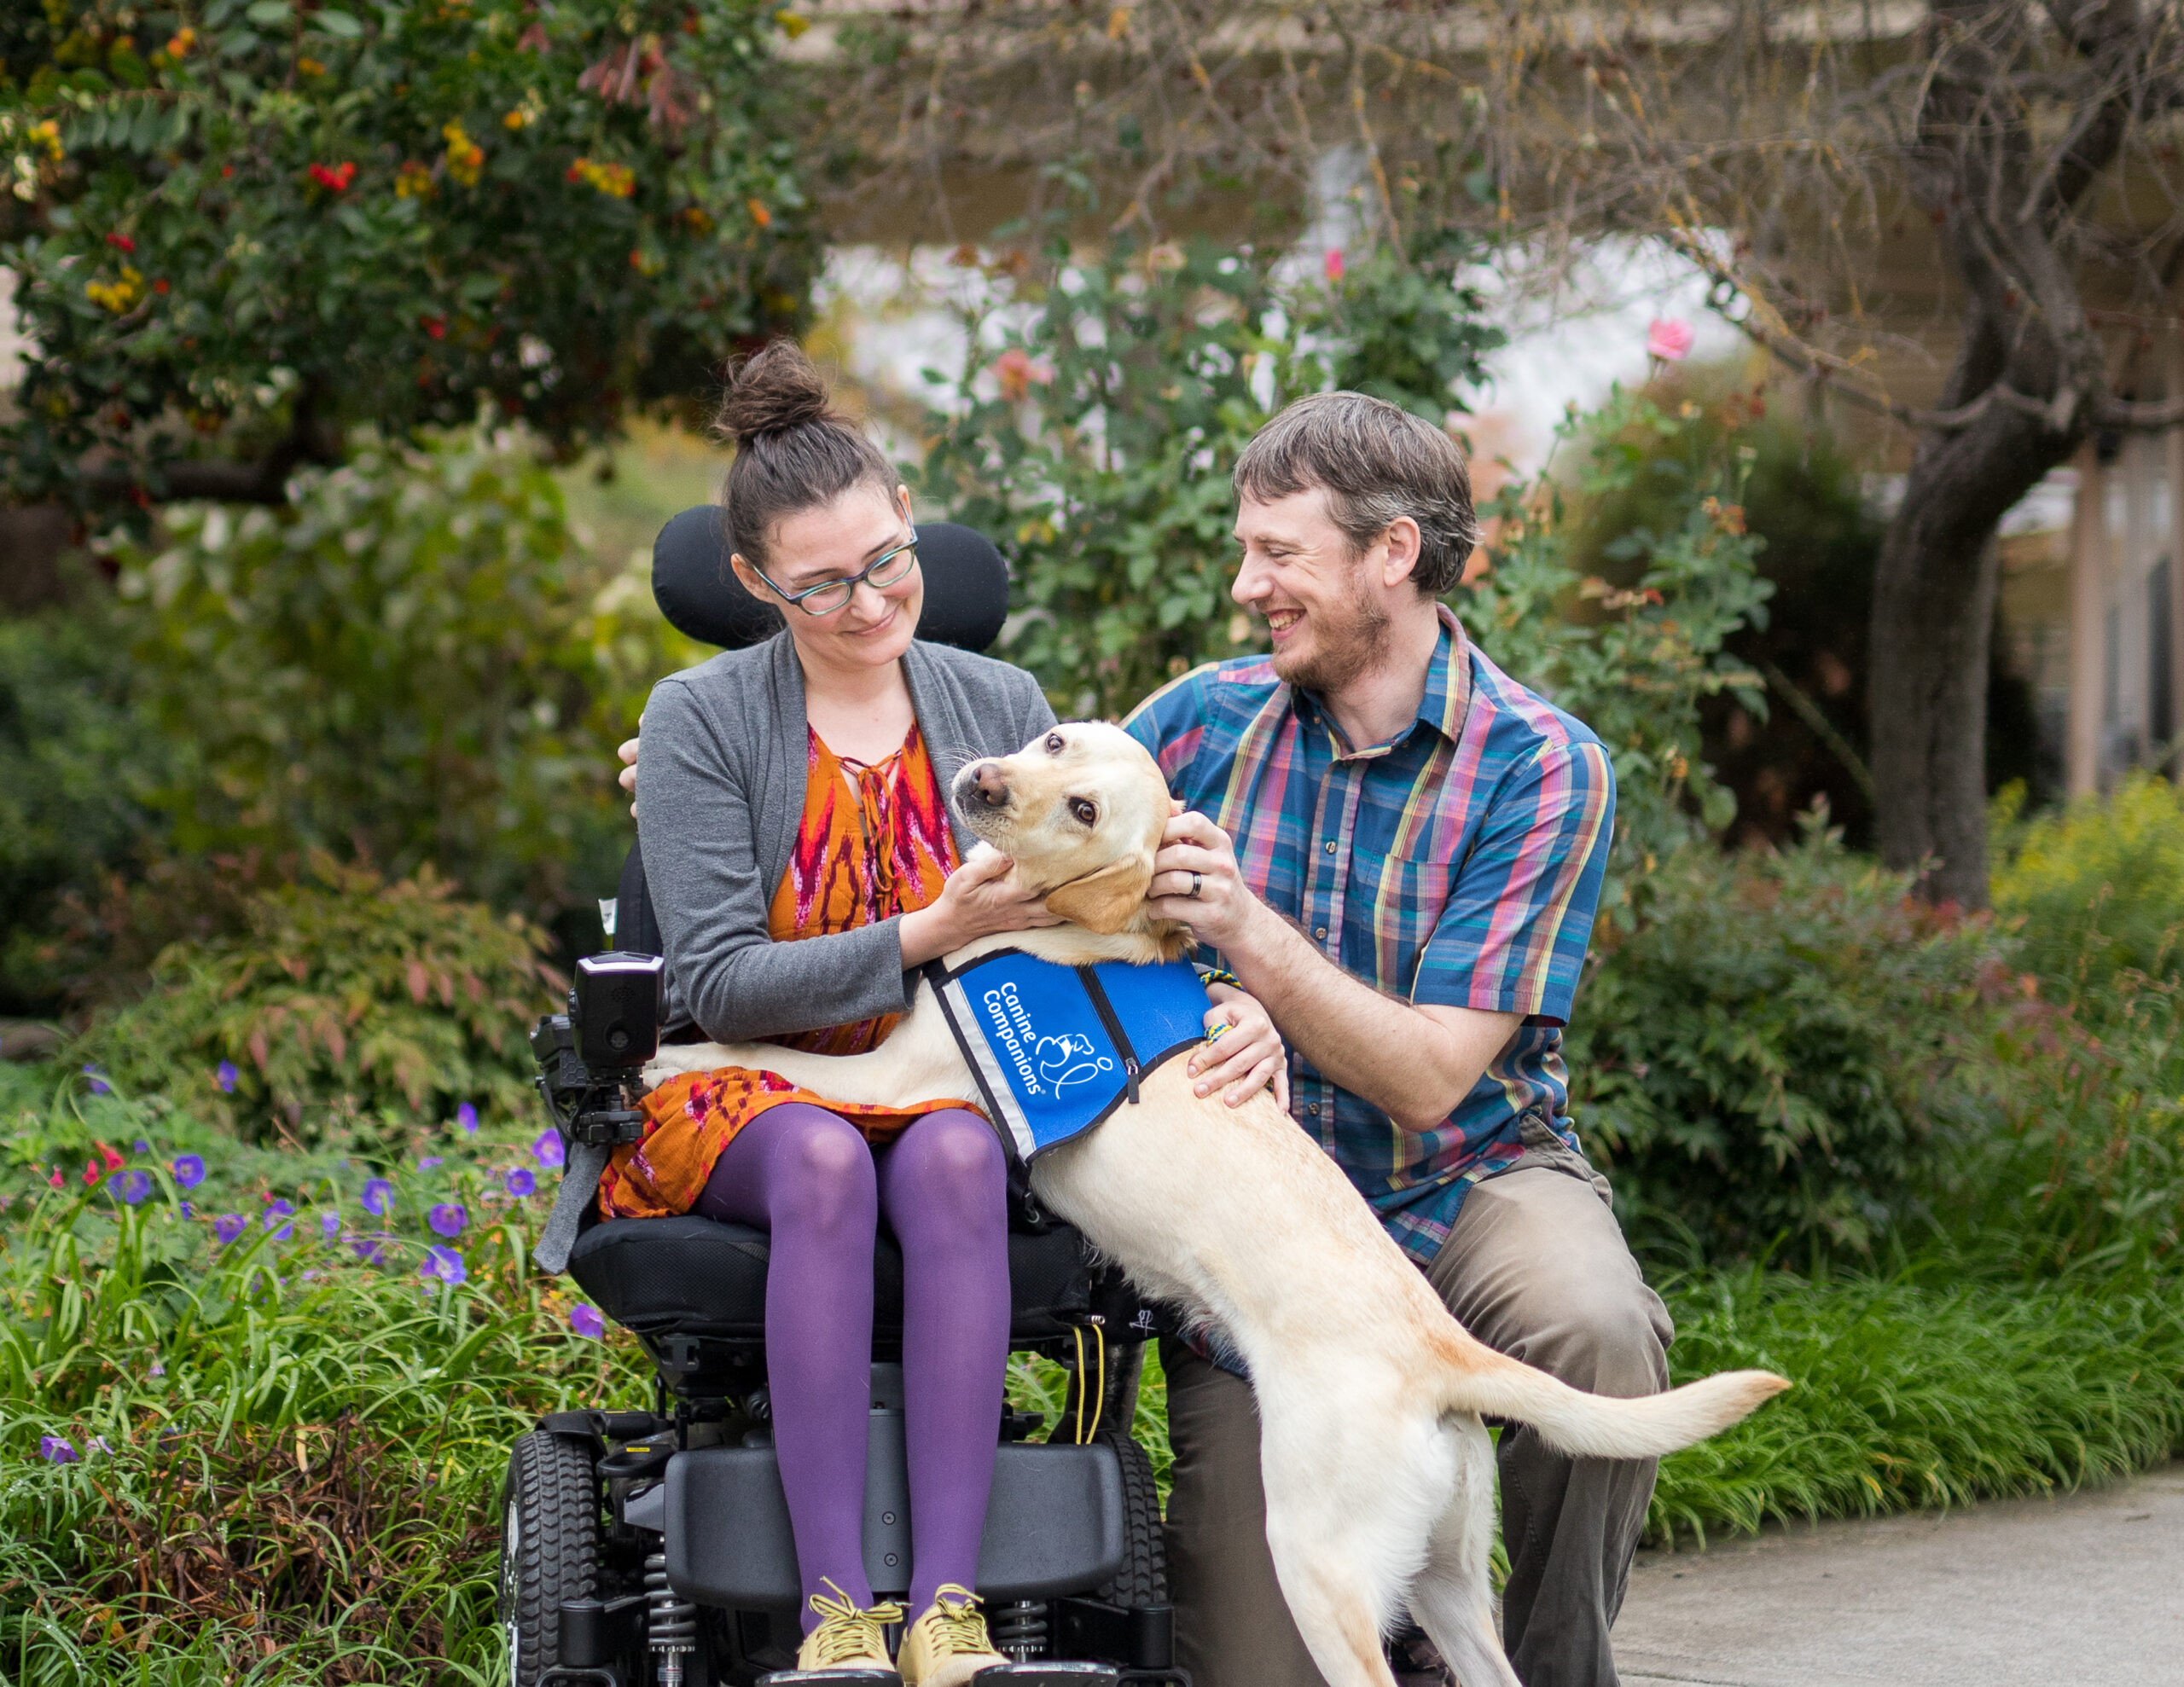 Young woman in a wheel chair with her service dog next to a young man